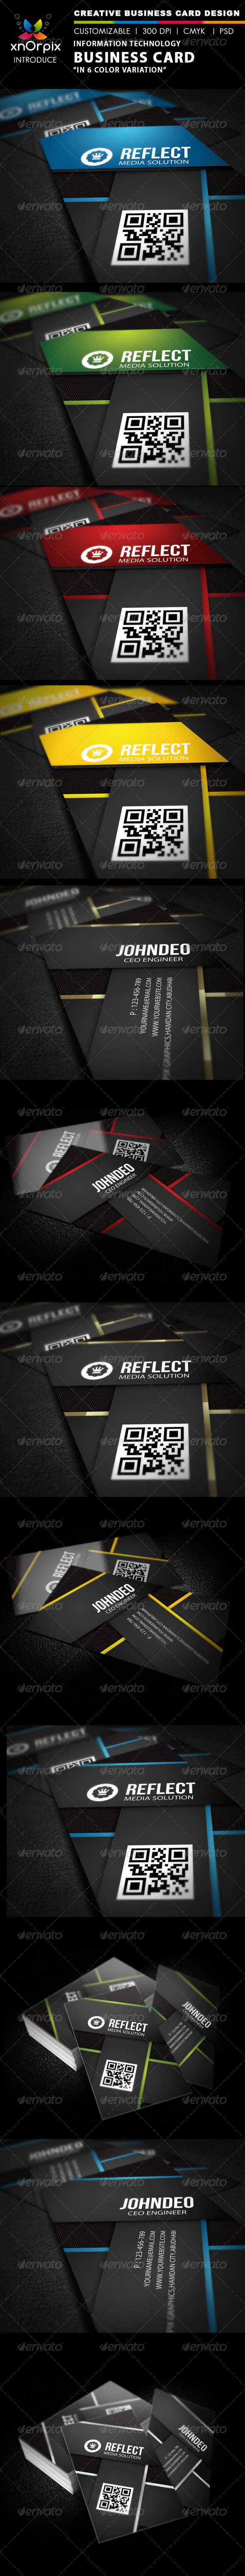 Information Technology Business Card - Corporate Business Cards